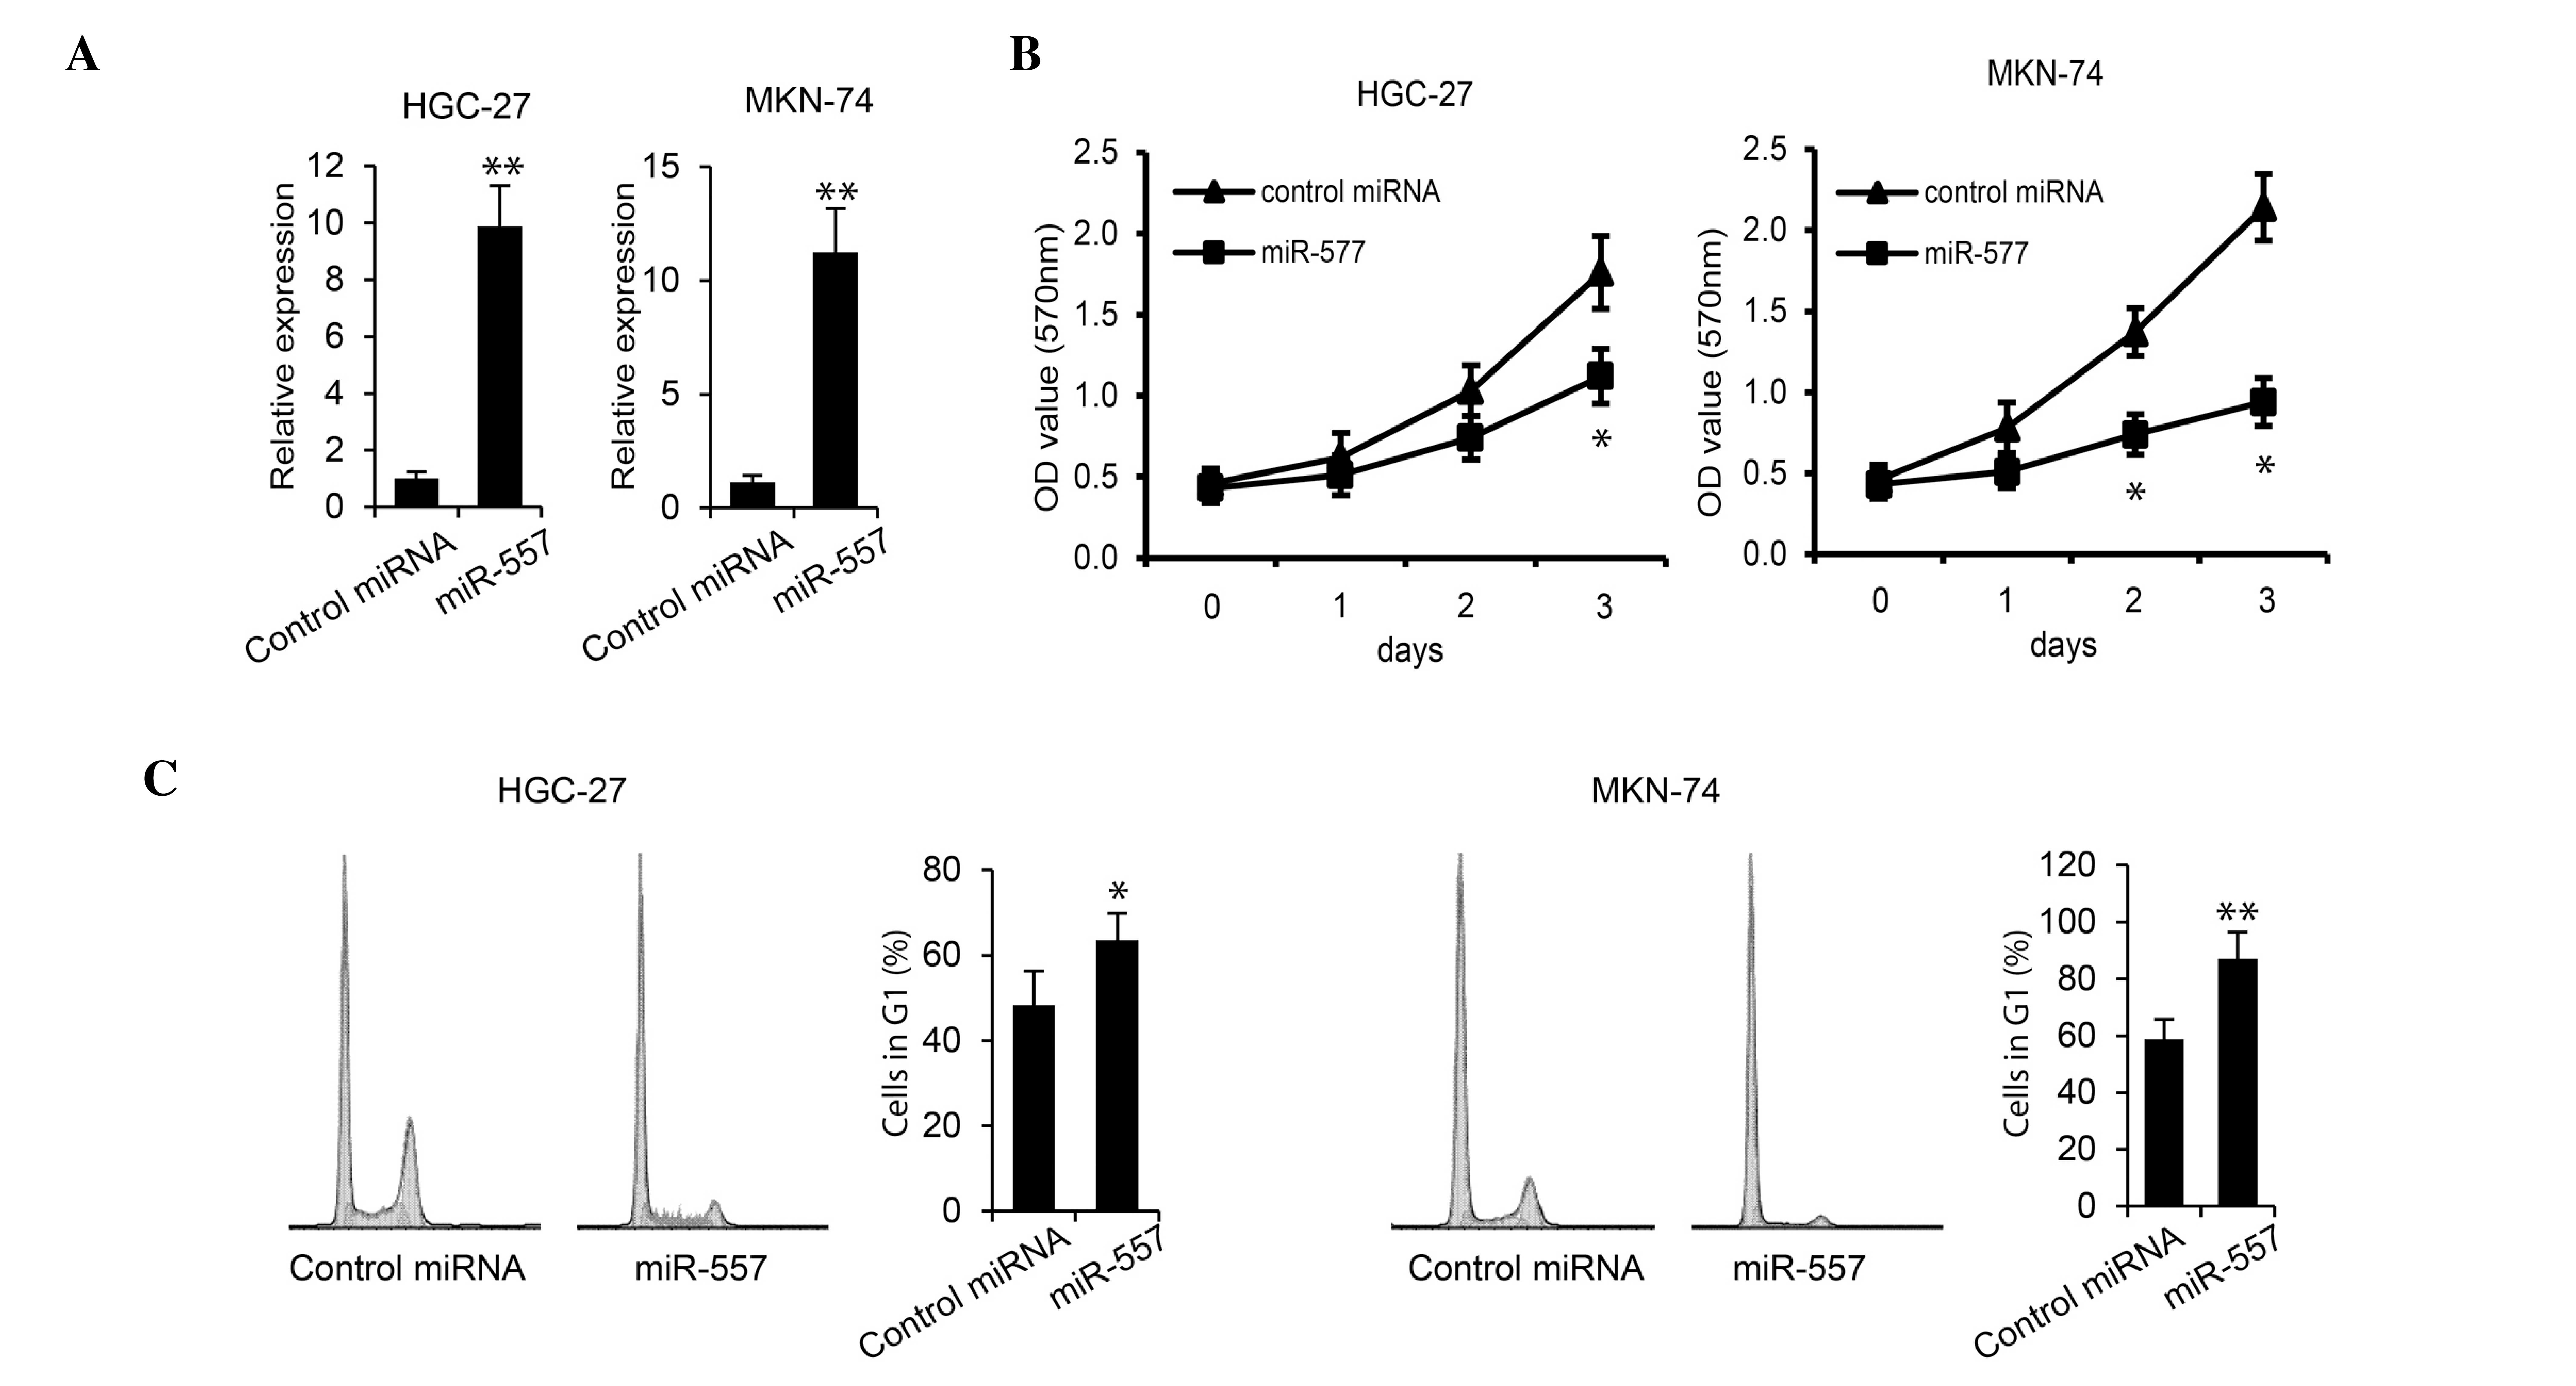 HNRNPK overexpression suppressed GC cell tumor growth in